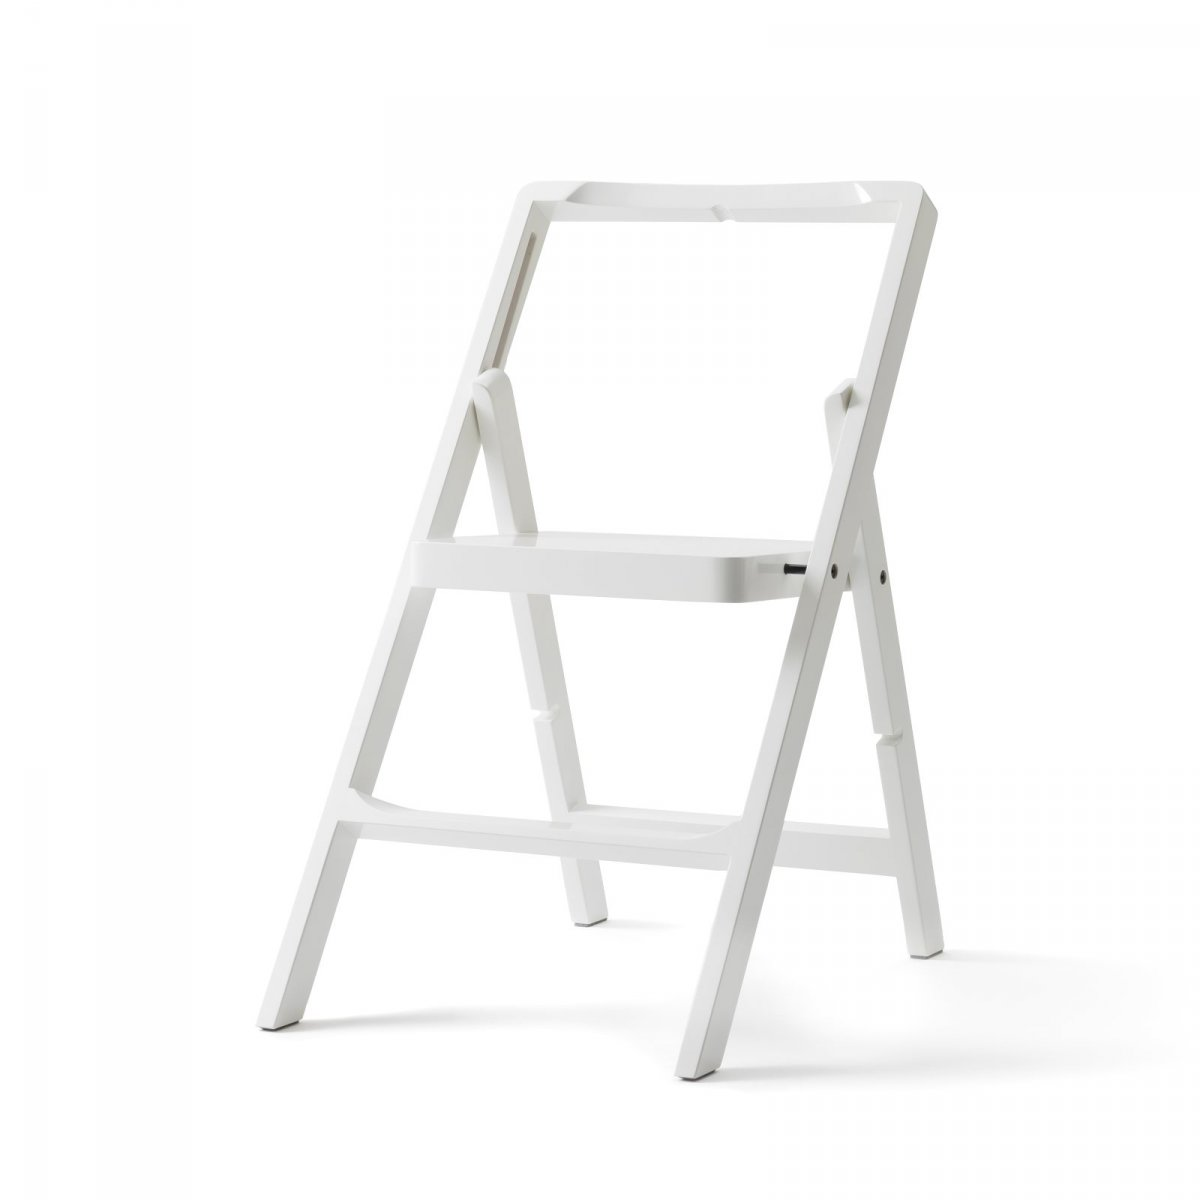 Step Mini step stool, white.